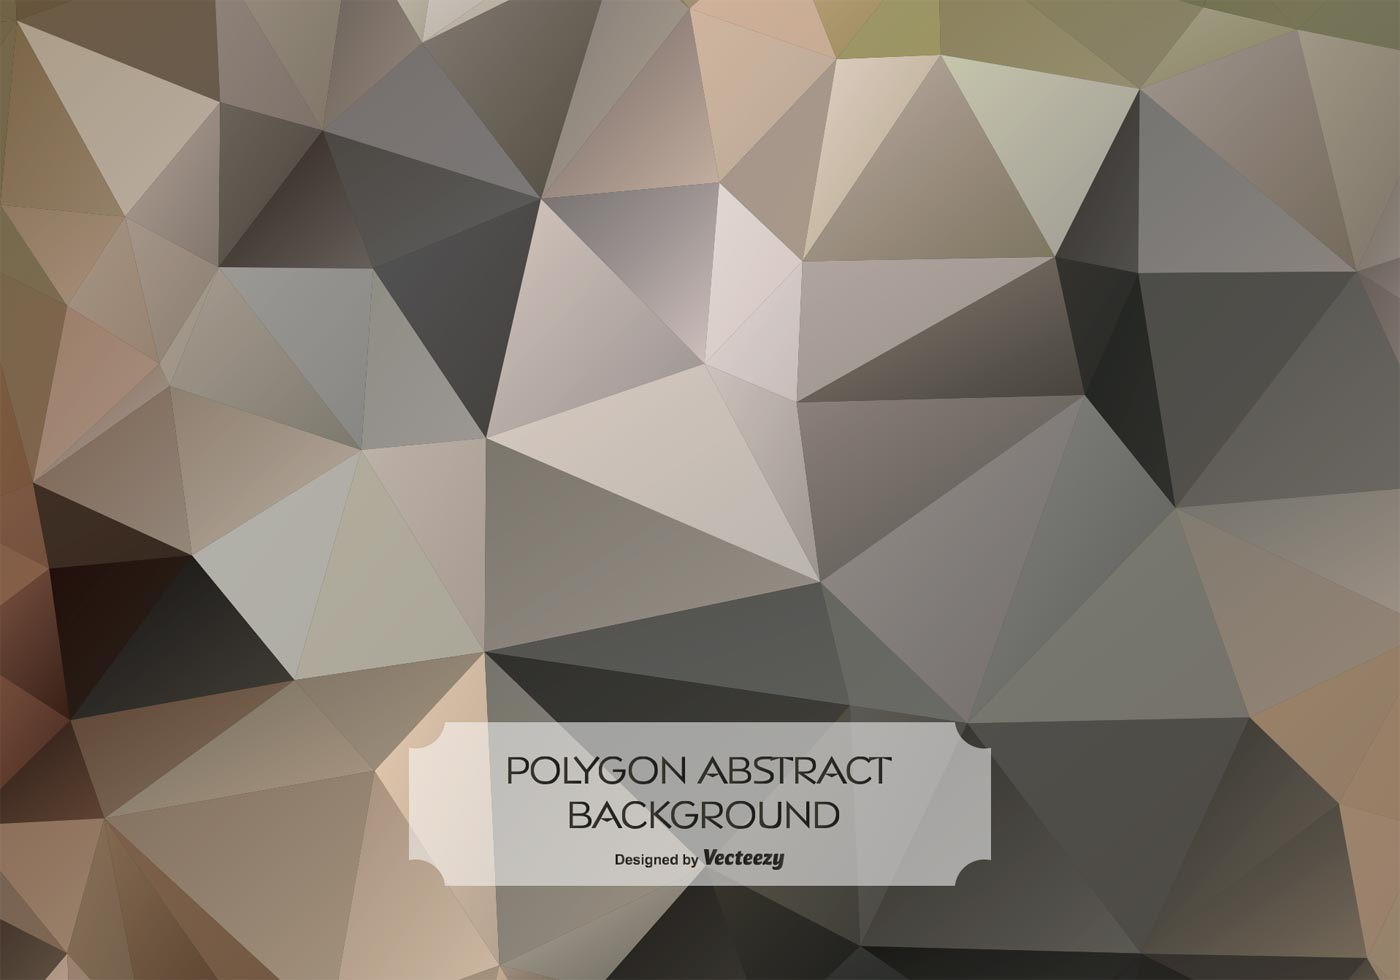 Abstract Polygon Style Background Download Free Vector